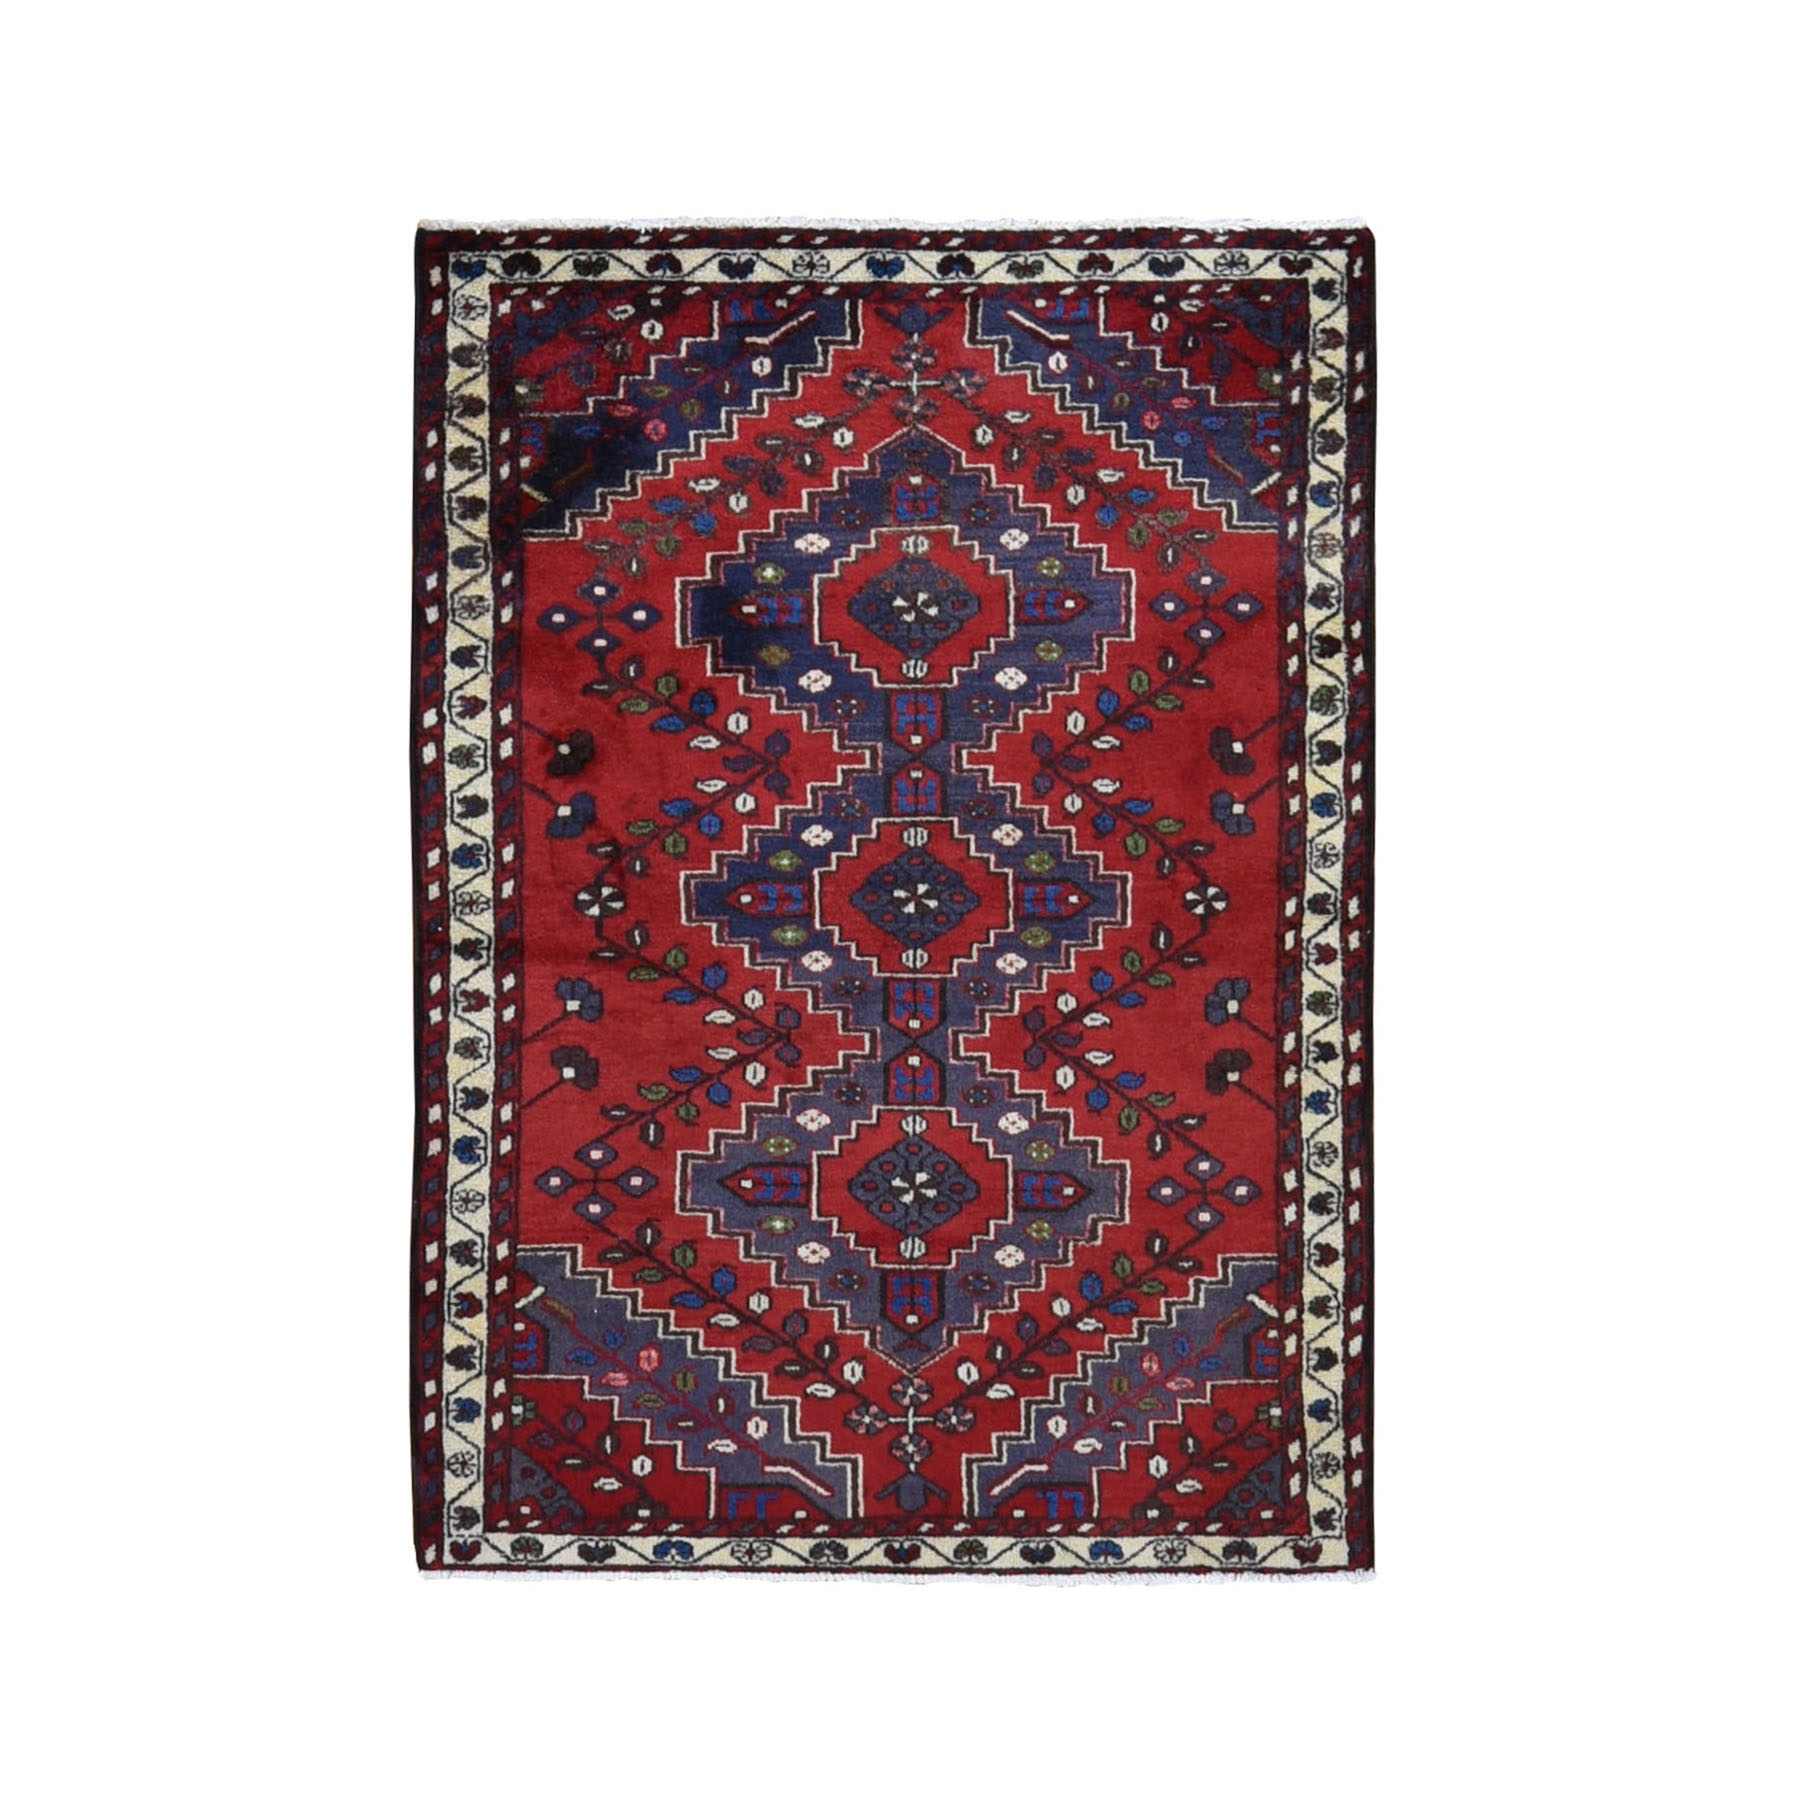 "3'5""x5' Red New Persian Pure Wool Tribal Design Hand Woven Bohemian Rug"